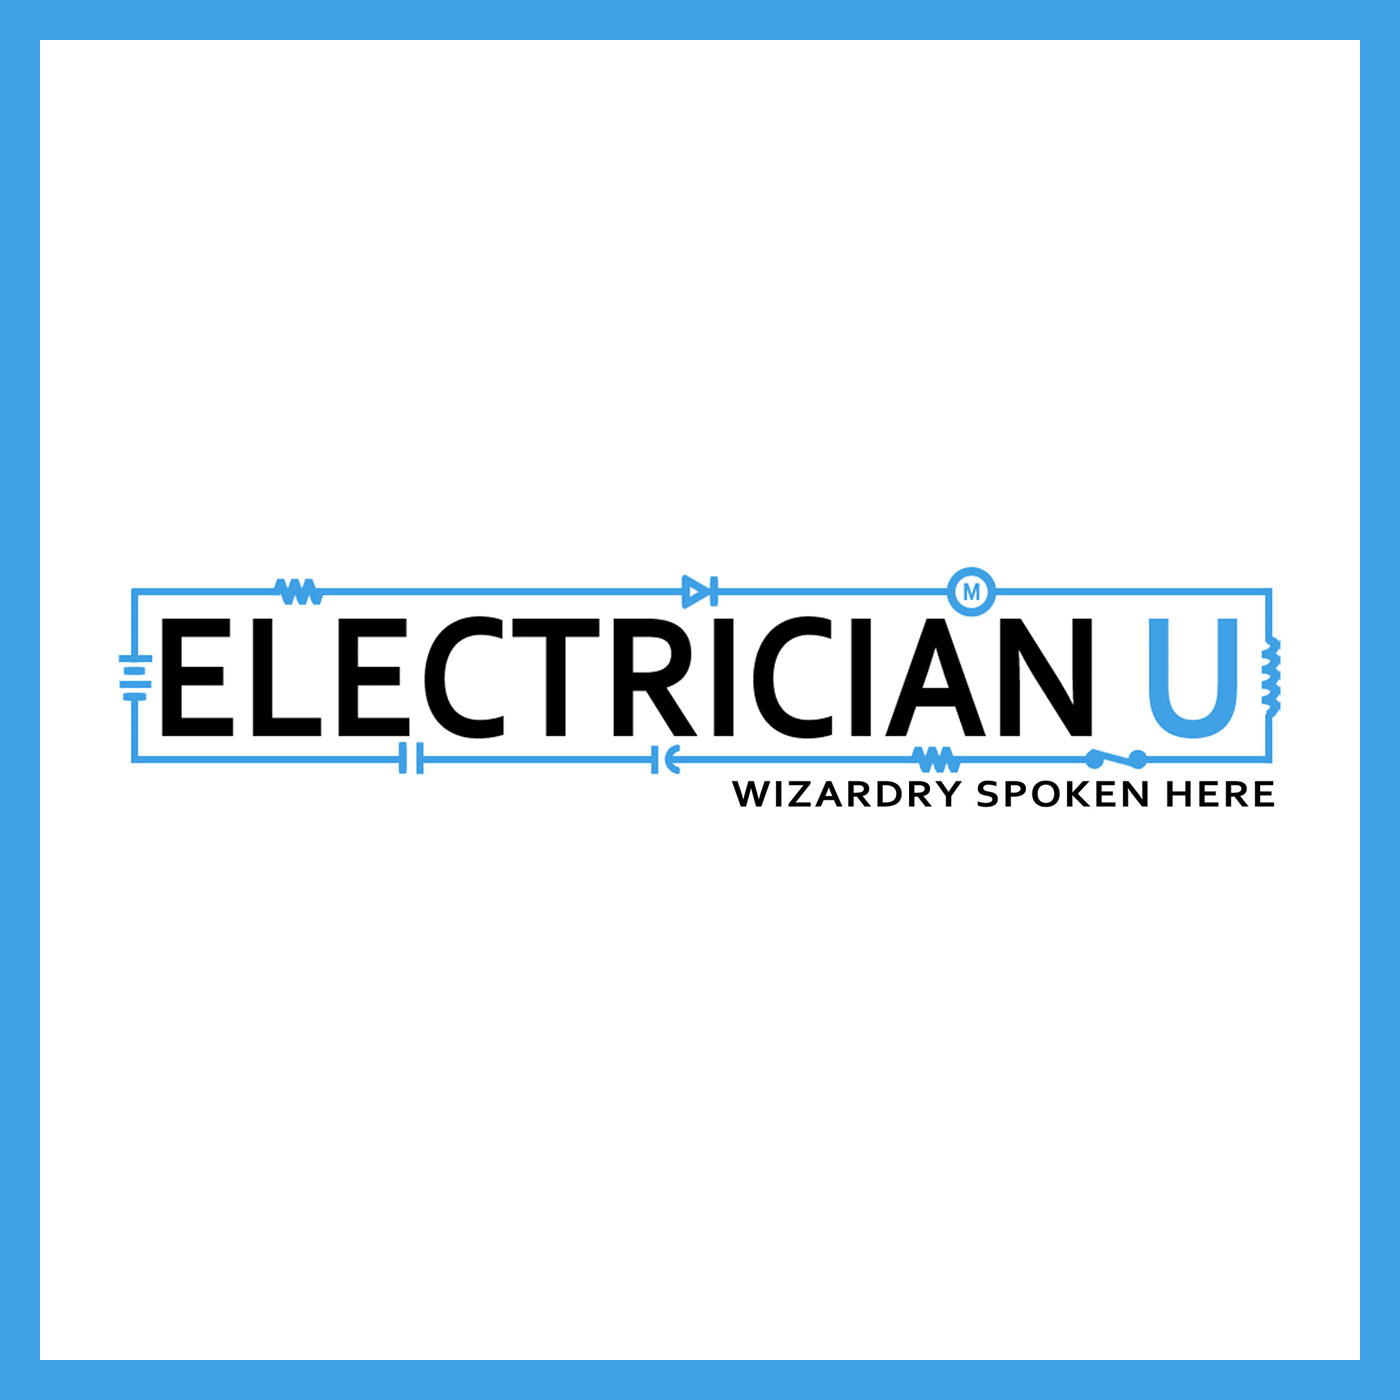 electrician-u-itunes_icon.